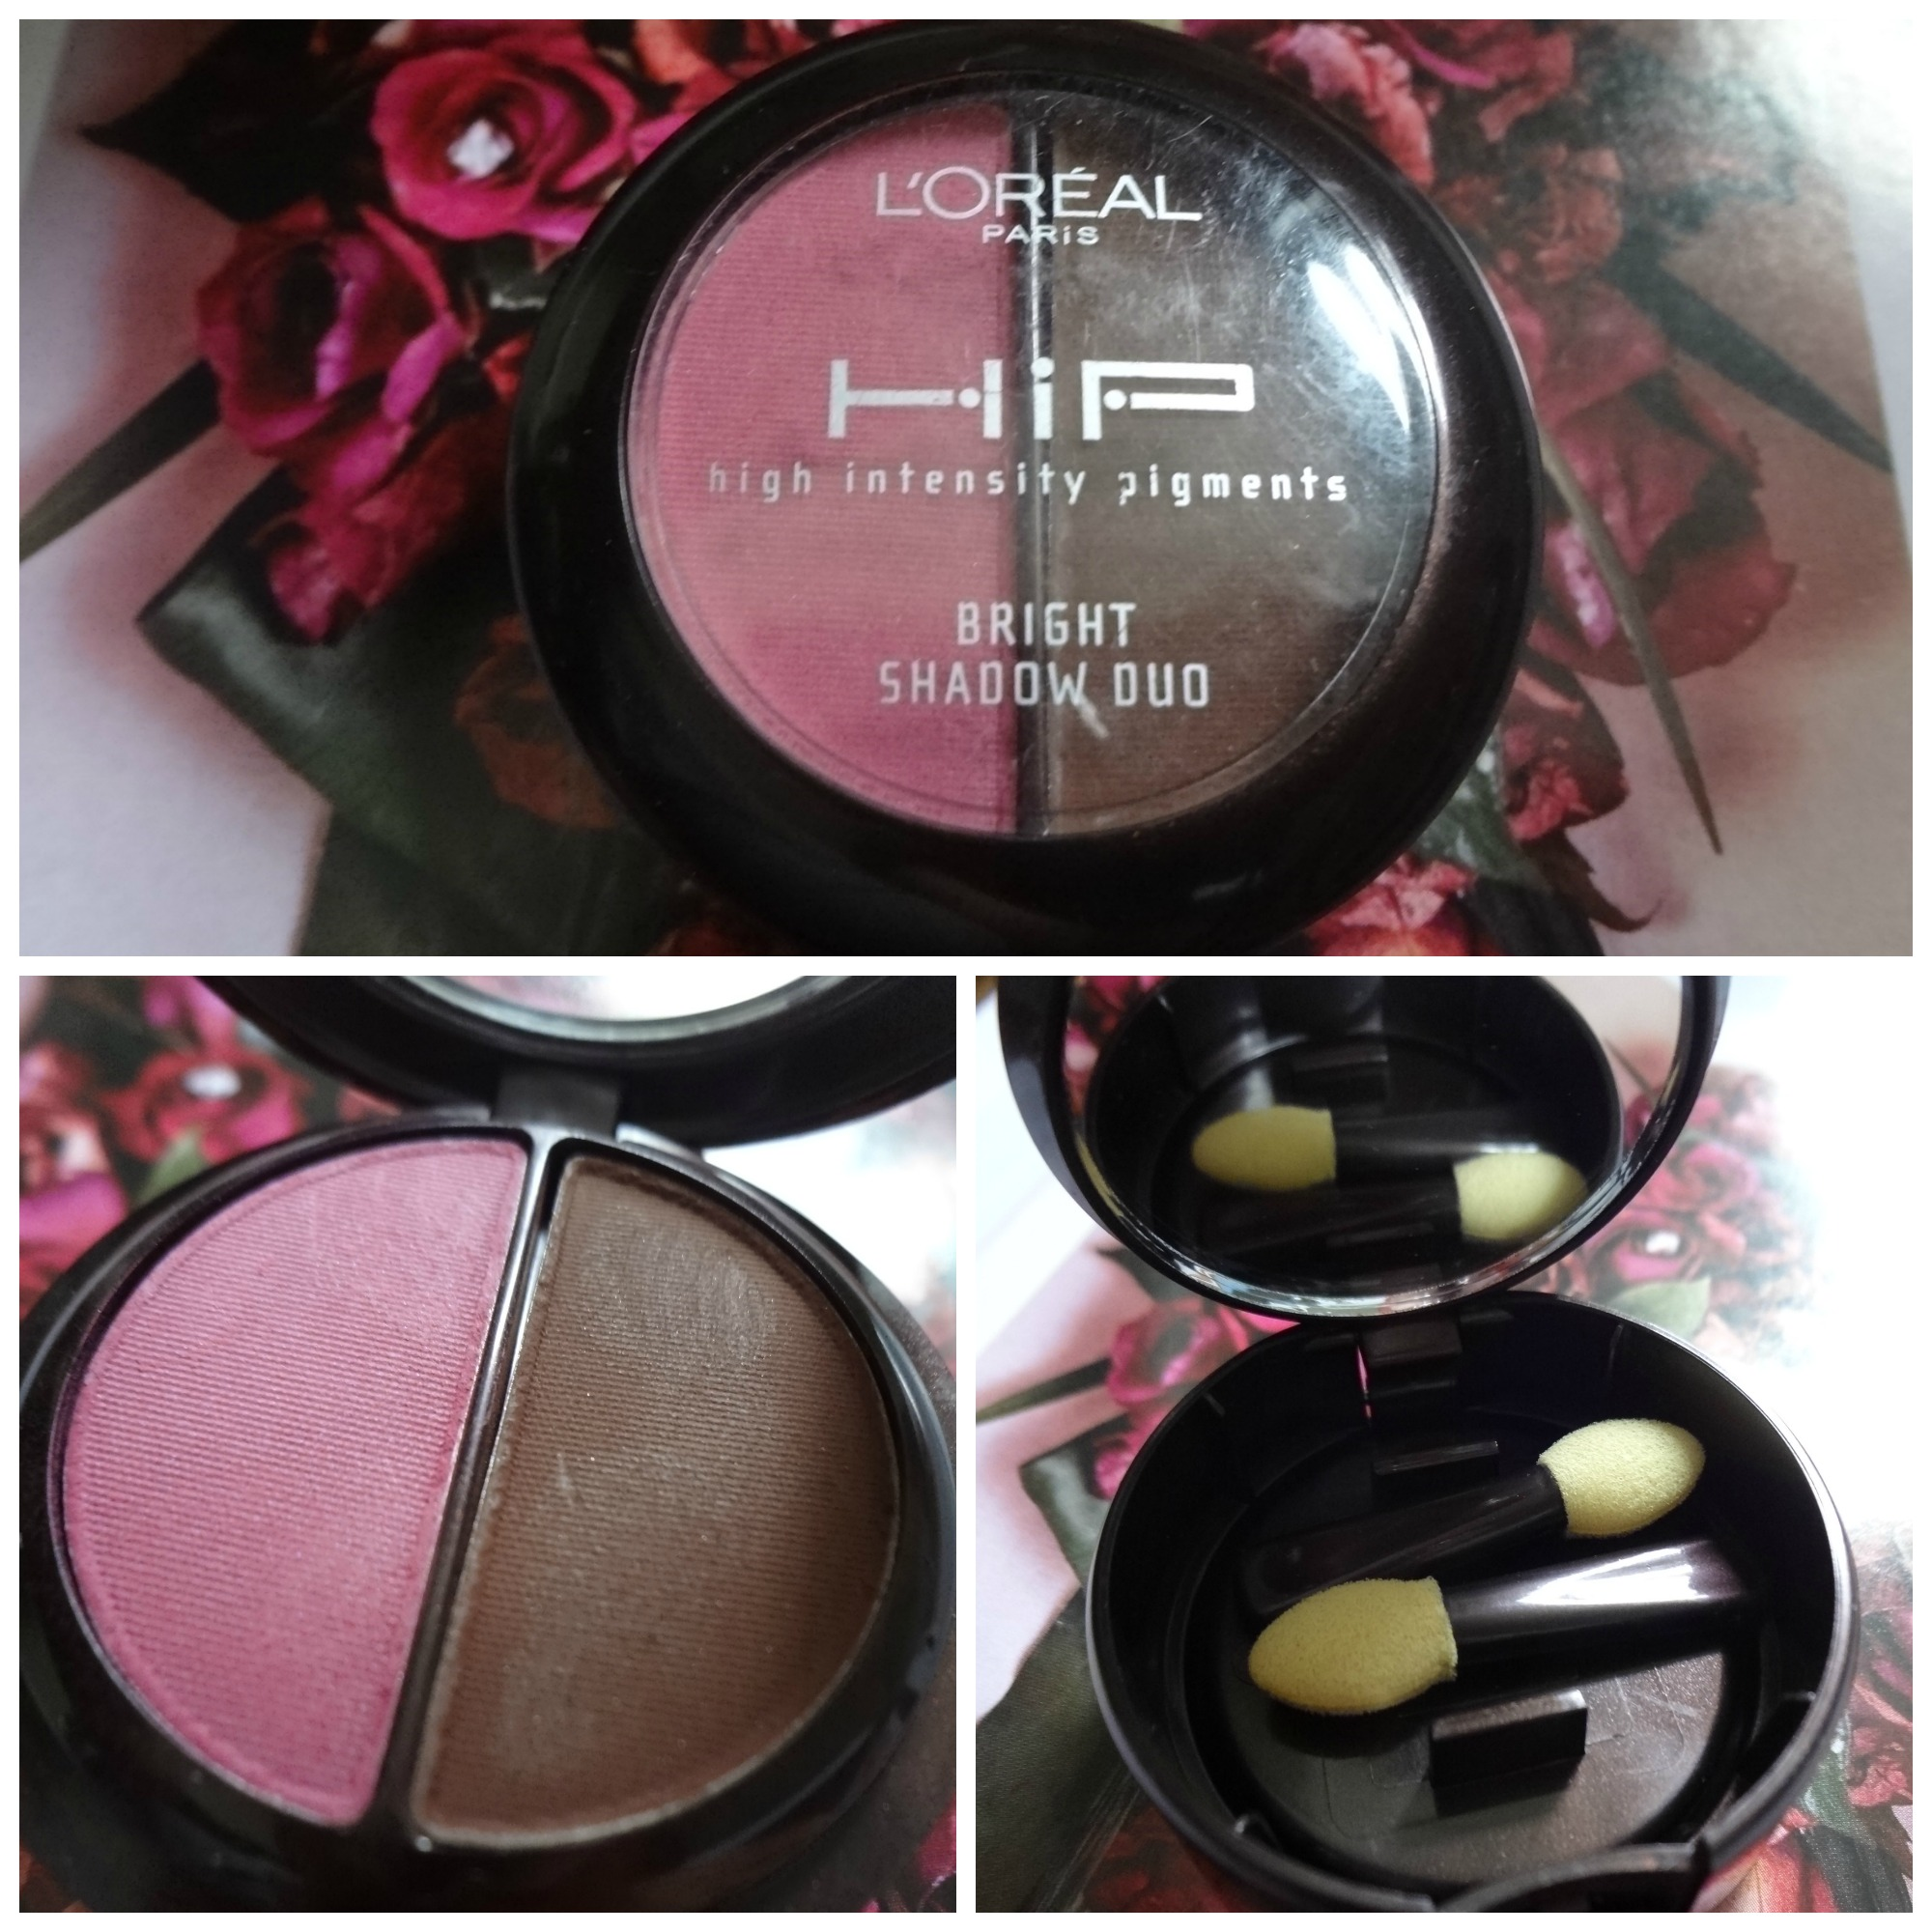 L'oreal HiP Bright Shadow Duo|Review & Swatch – Hey Sharonoox